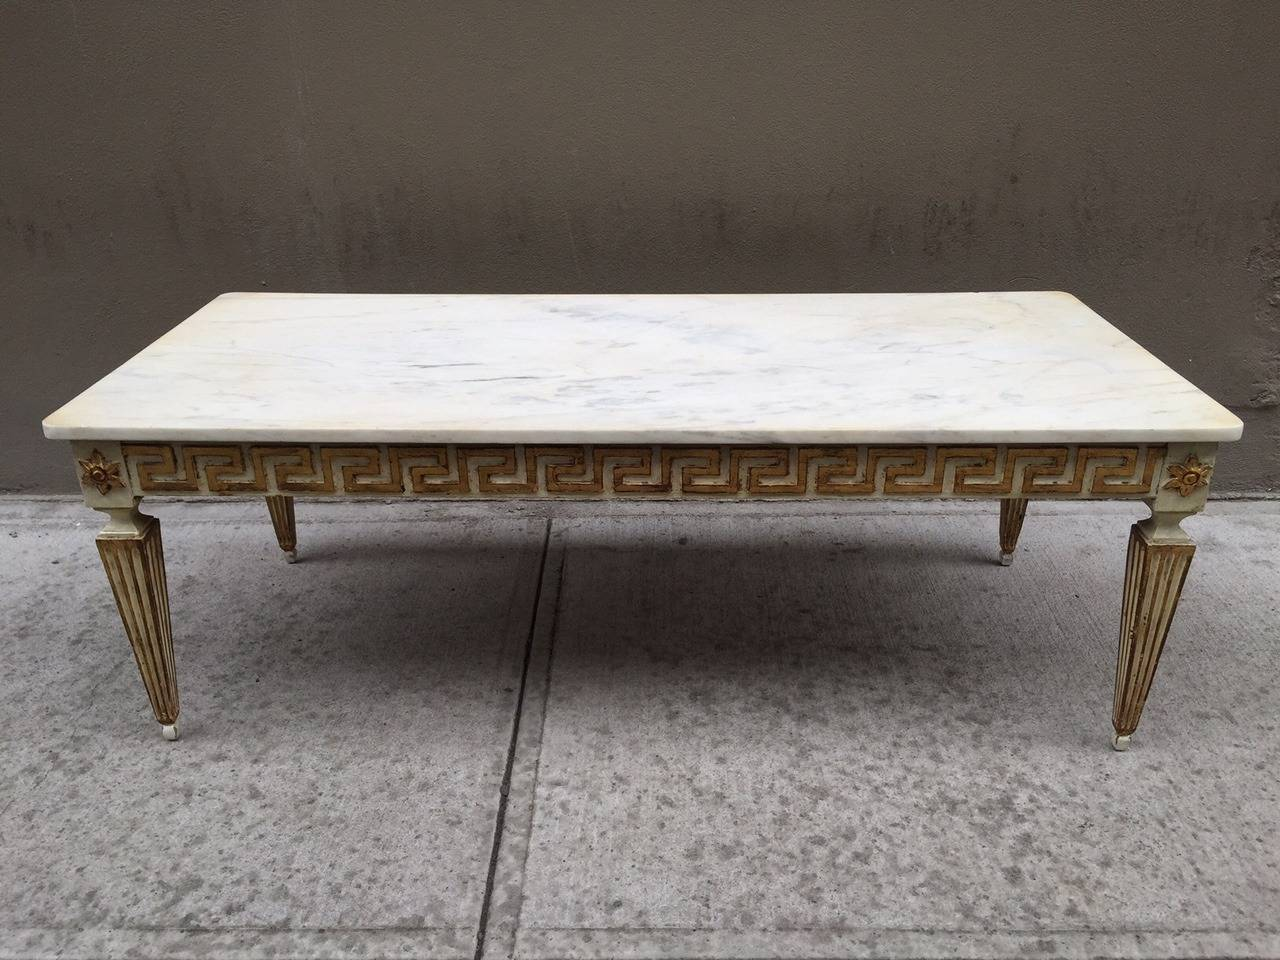 Antique Italian Neoclassical Style Marble Top Coffee Table For Sale At 1stdibs